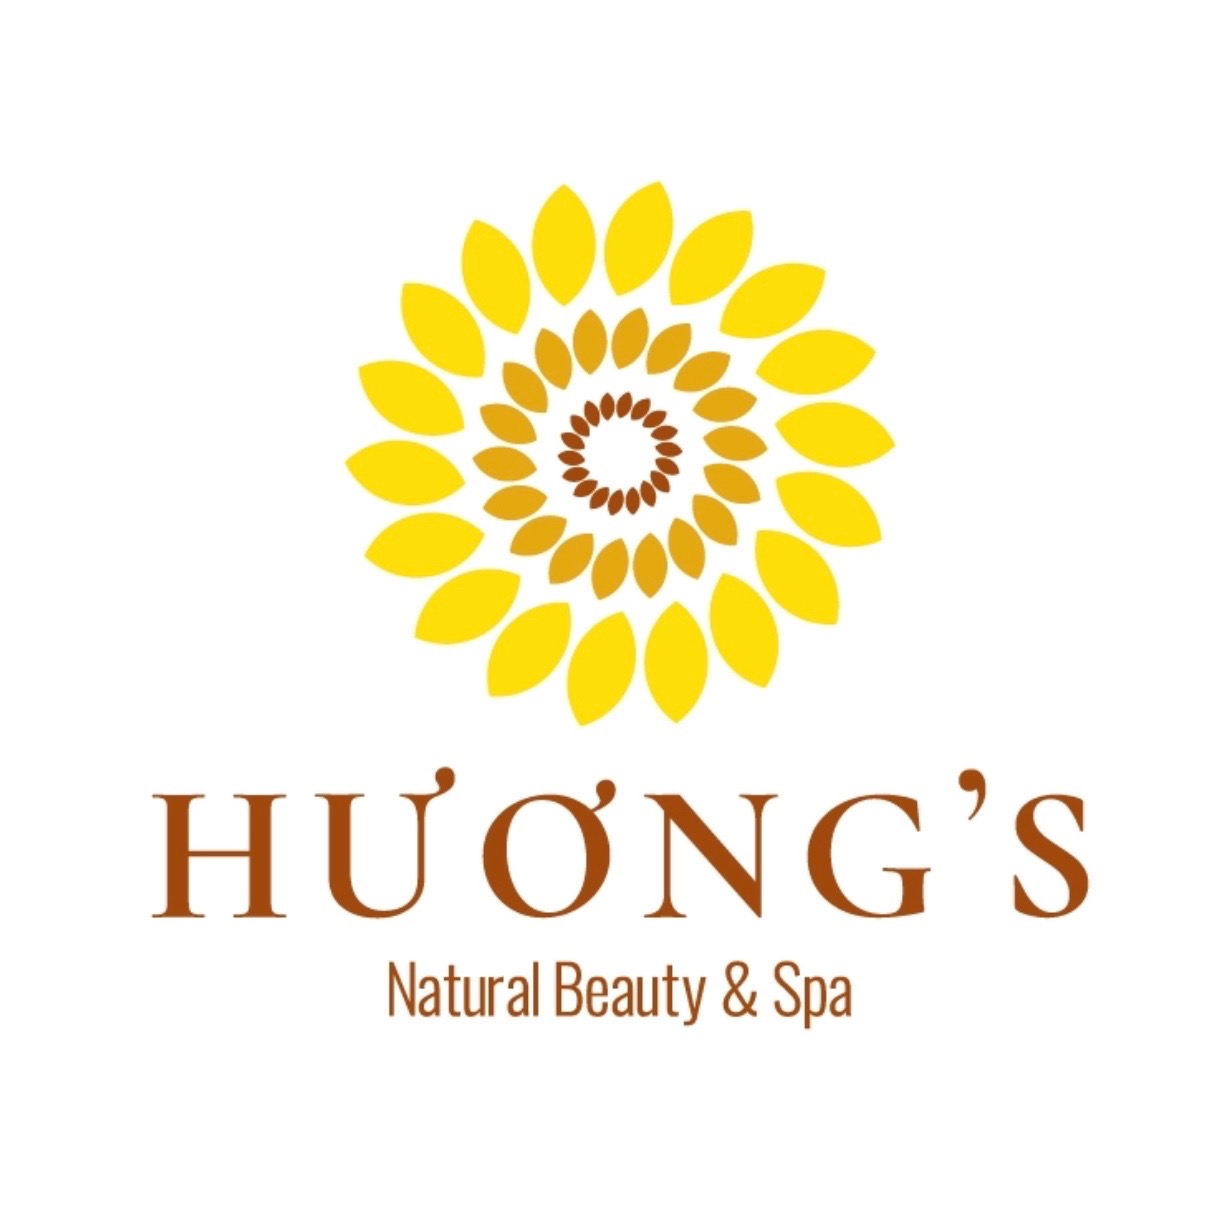 Hương's Natural Beauty & Spa